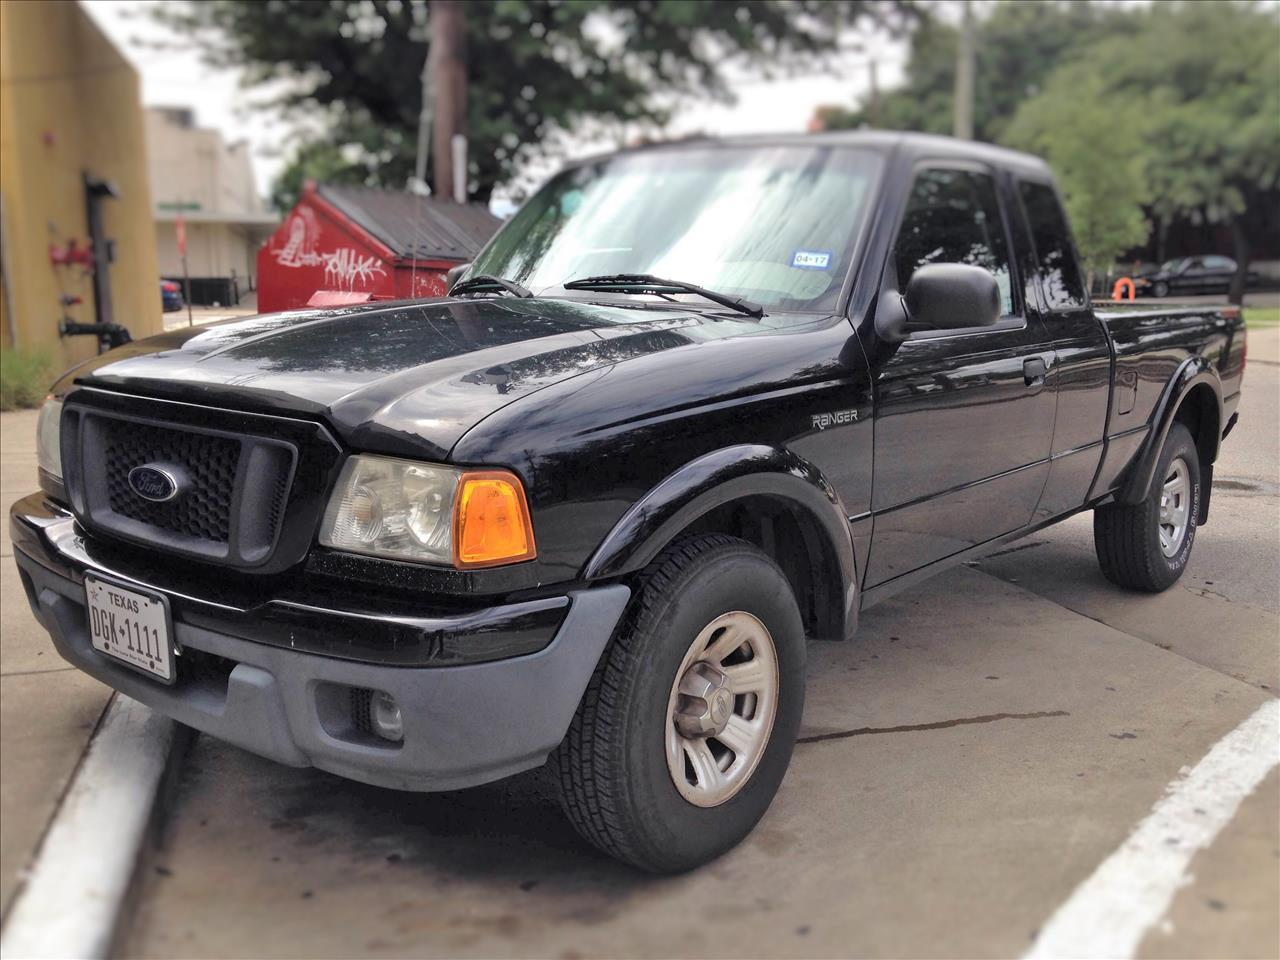 2005 FORD RANGER black laporte mitsubishi w in-house advantage also can put a positive mark on y